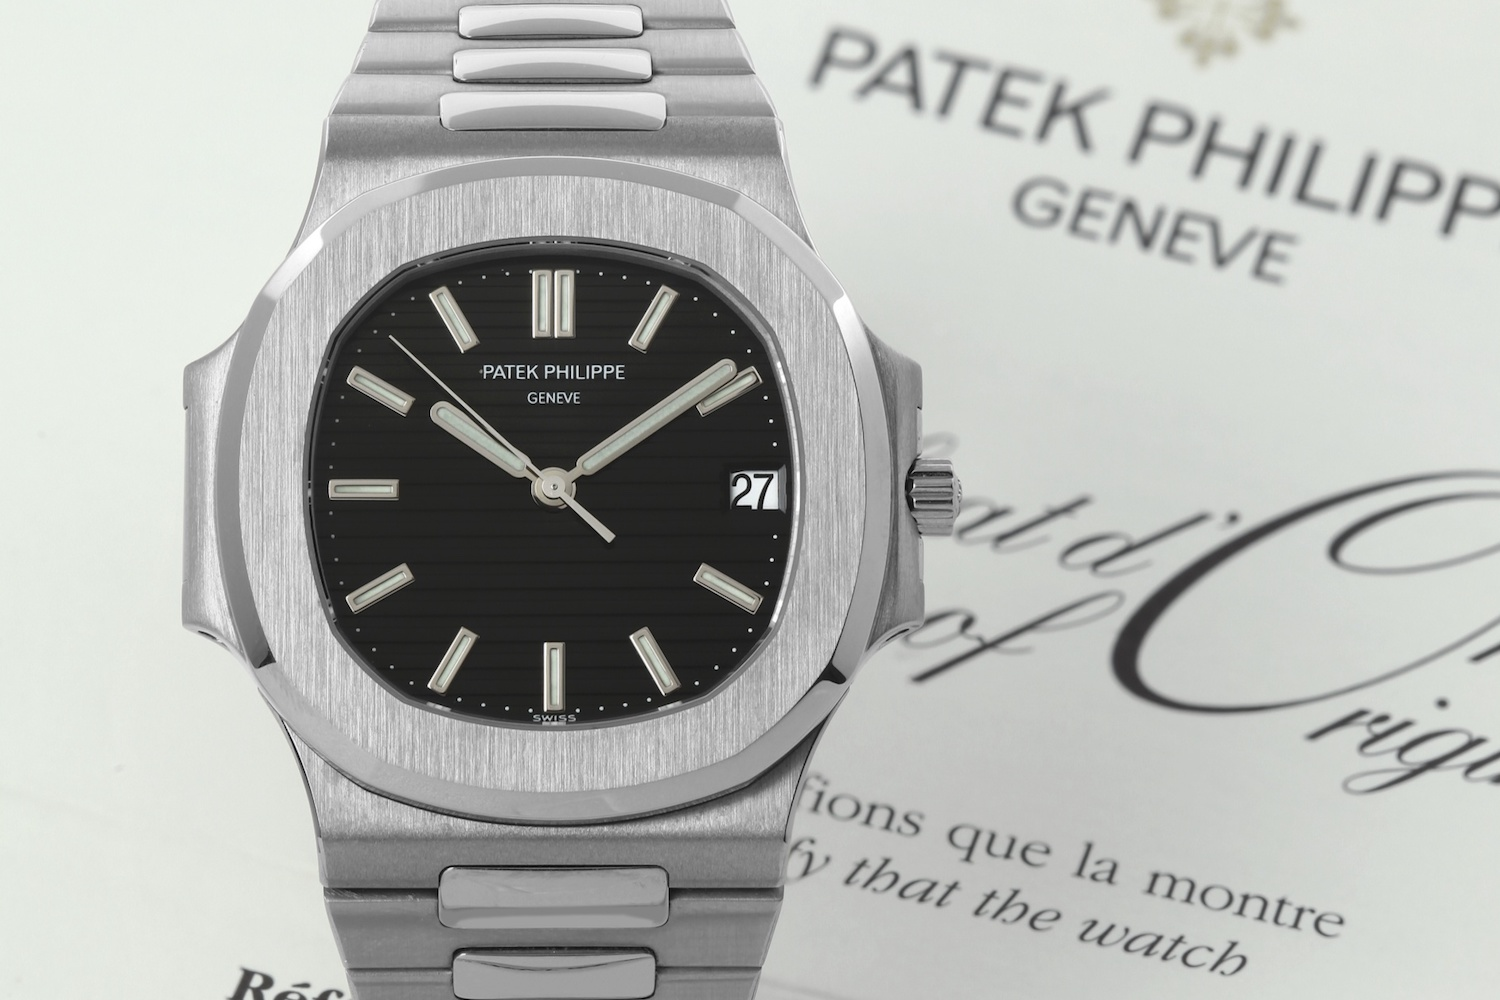 edb6b0b92f7 History of the Patek Philippe Nautilus, Part 2 – The evolution of a ...